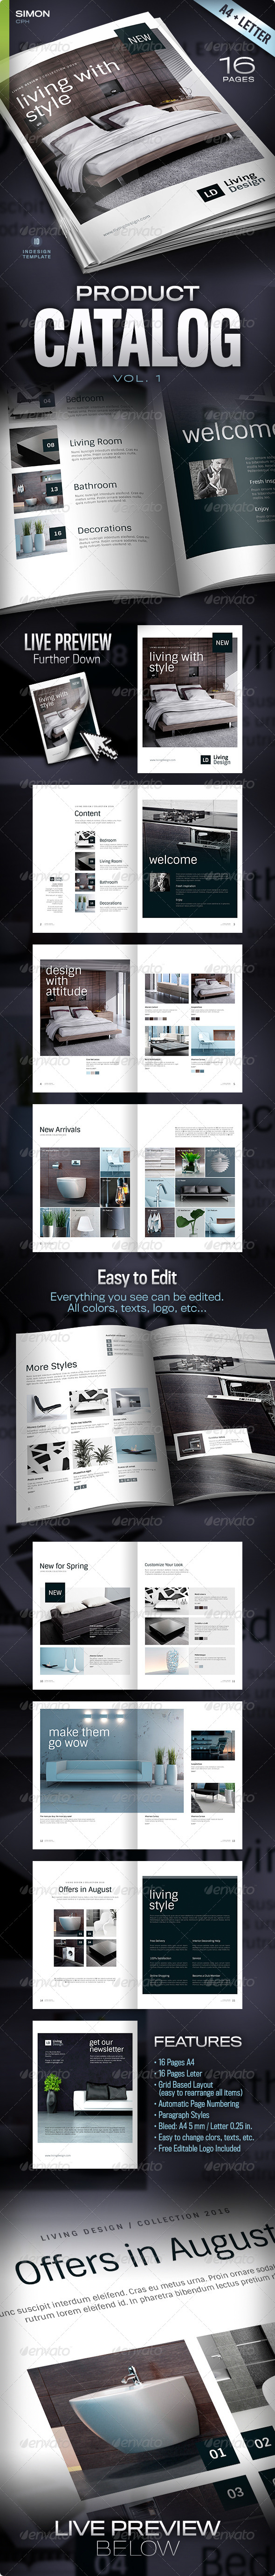 GraphicRiver Product Catalog Vol 1 4638512